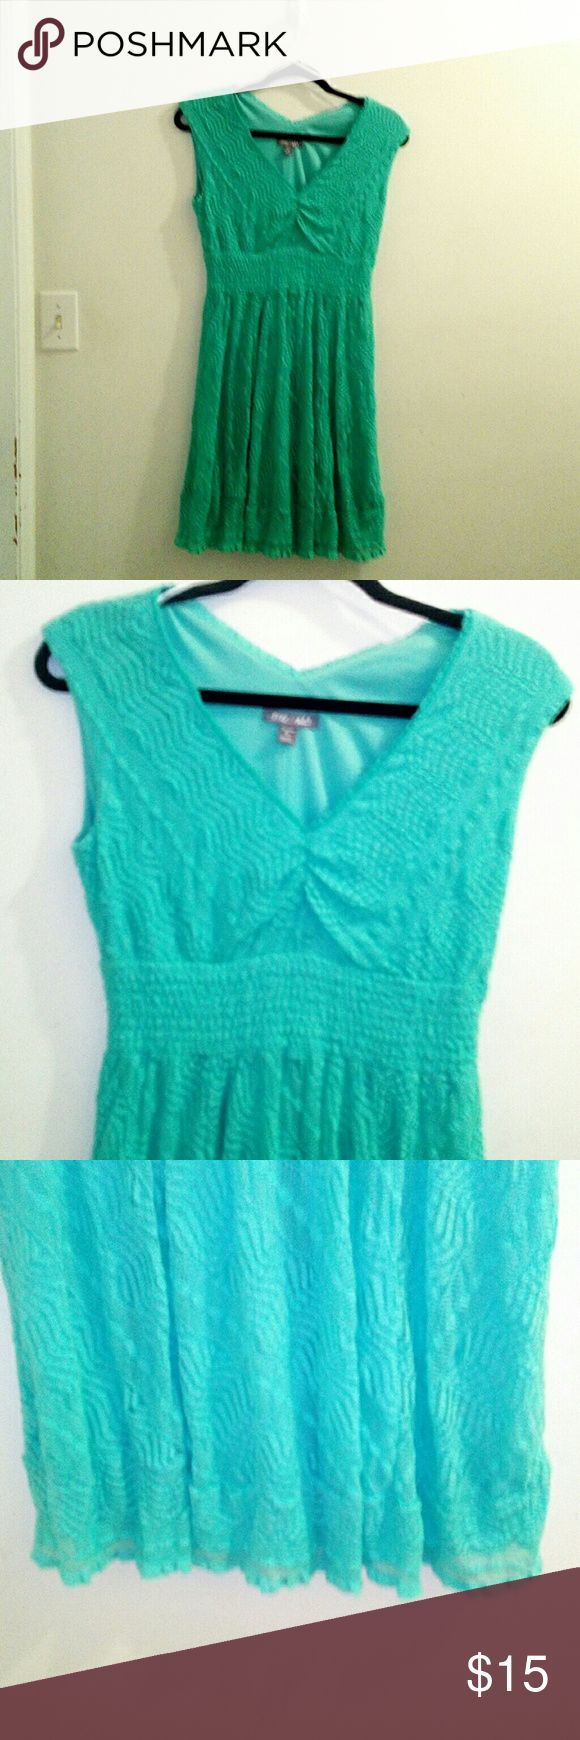 Mint green Roz & Ali lace overlay dress Petite 8 Great dress for summer! Mint green, lace overlay, sleeveless with a v neckline, it gathers under the bust. Gently worn. Size petite 8, from Roz & Ali. Smoke free home, do have pets. roz & ali Dresses Mini